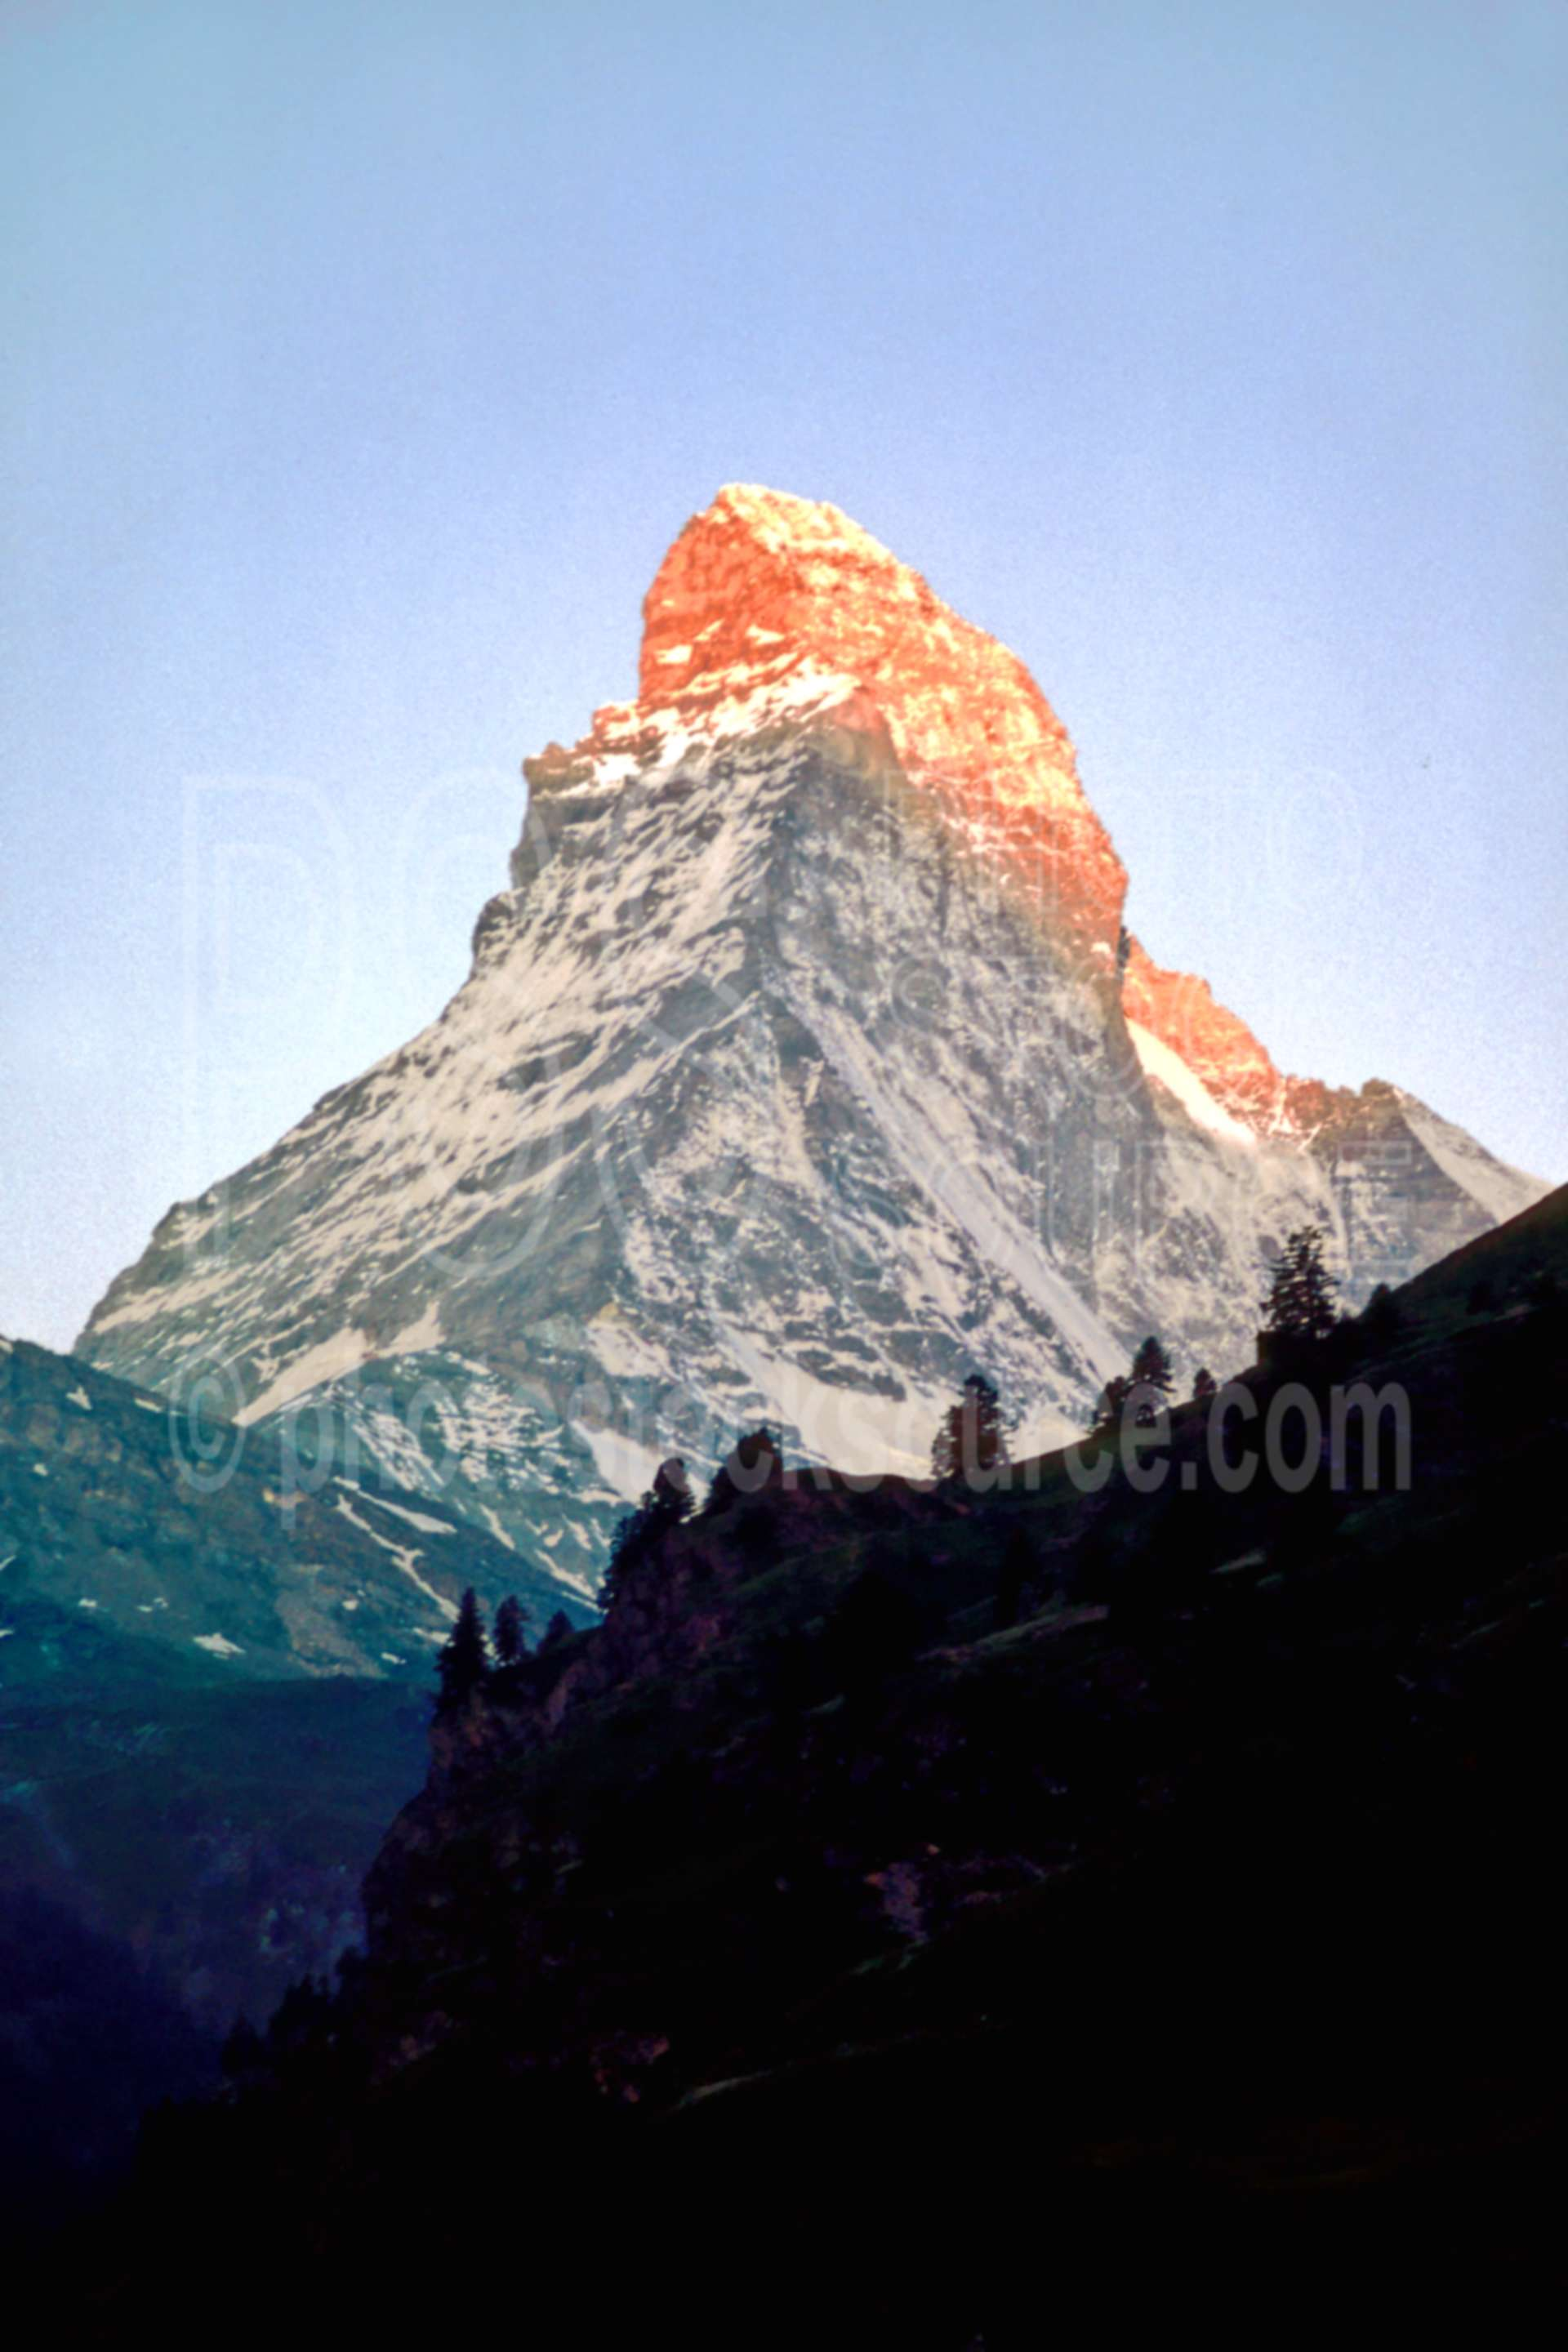 Matterhorn at Sunset,europe,matterhorn,sunset,nature,mountains